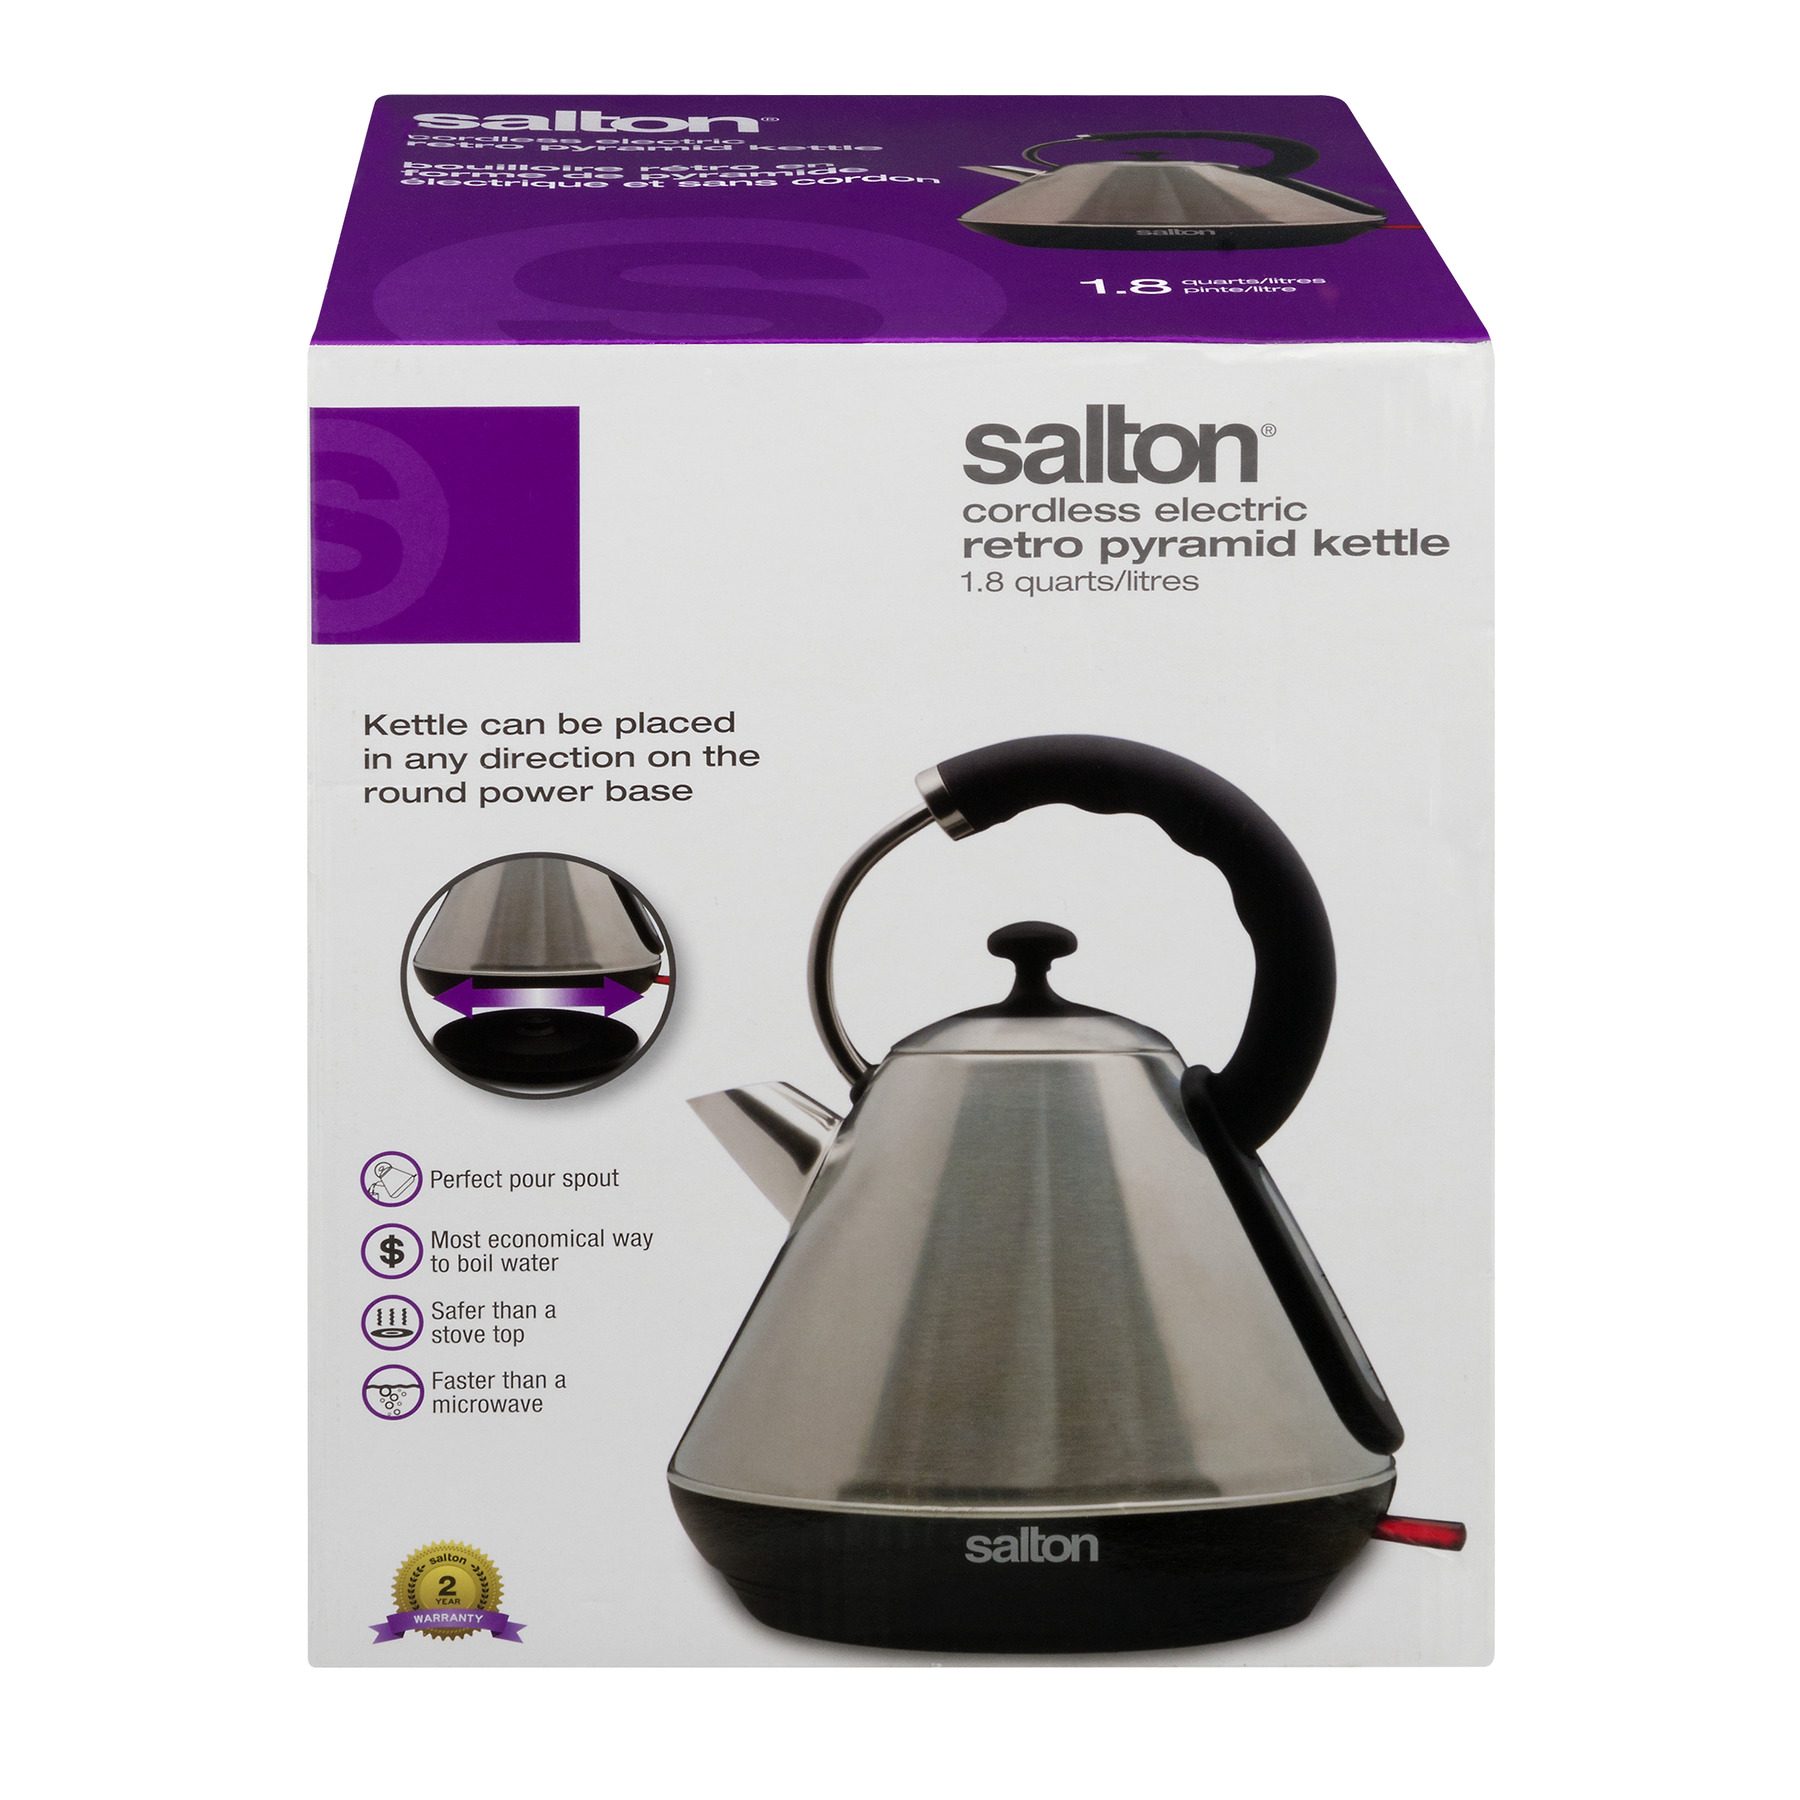 Salton Cordless Electric Retro Pyramid Kettle, 1.0 CT